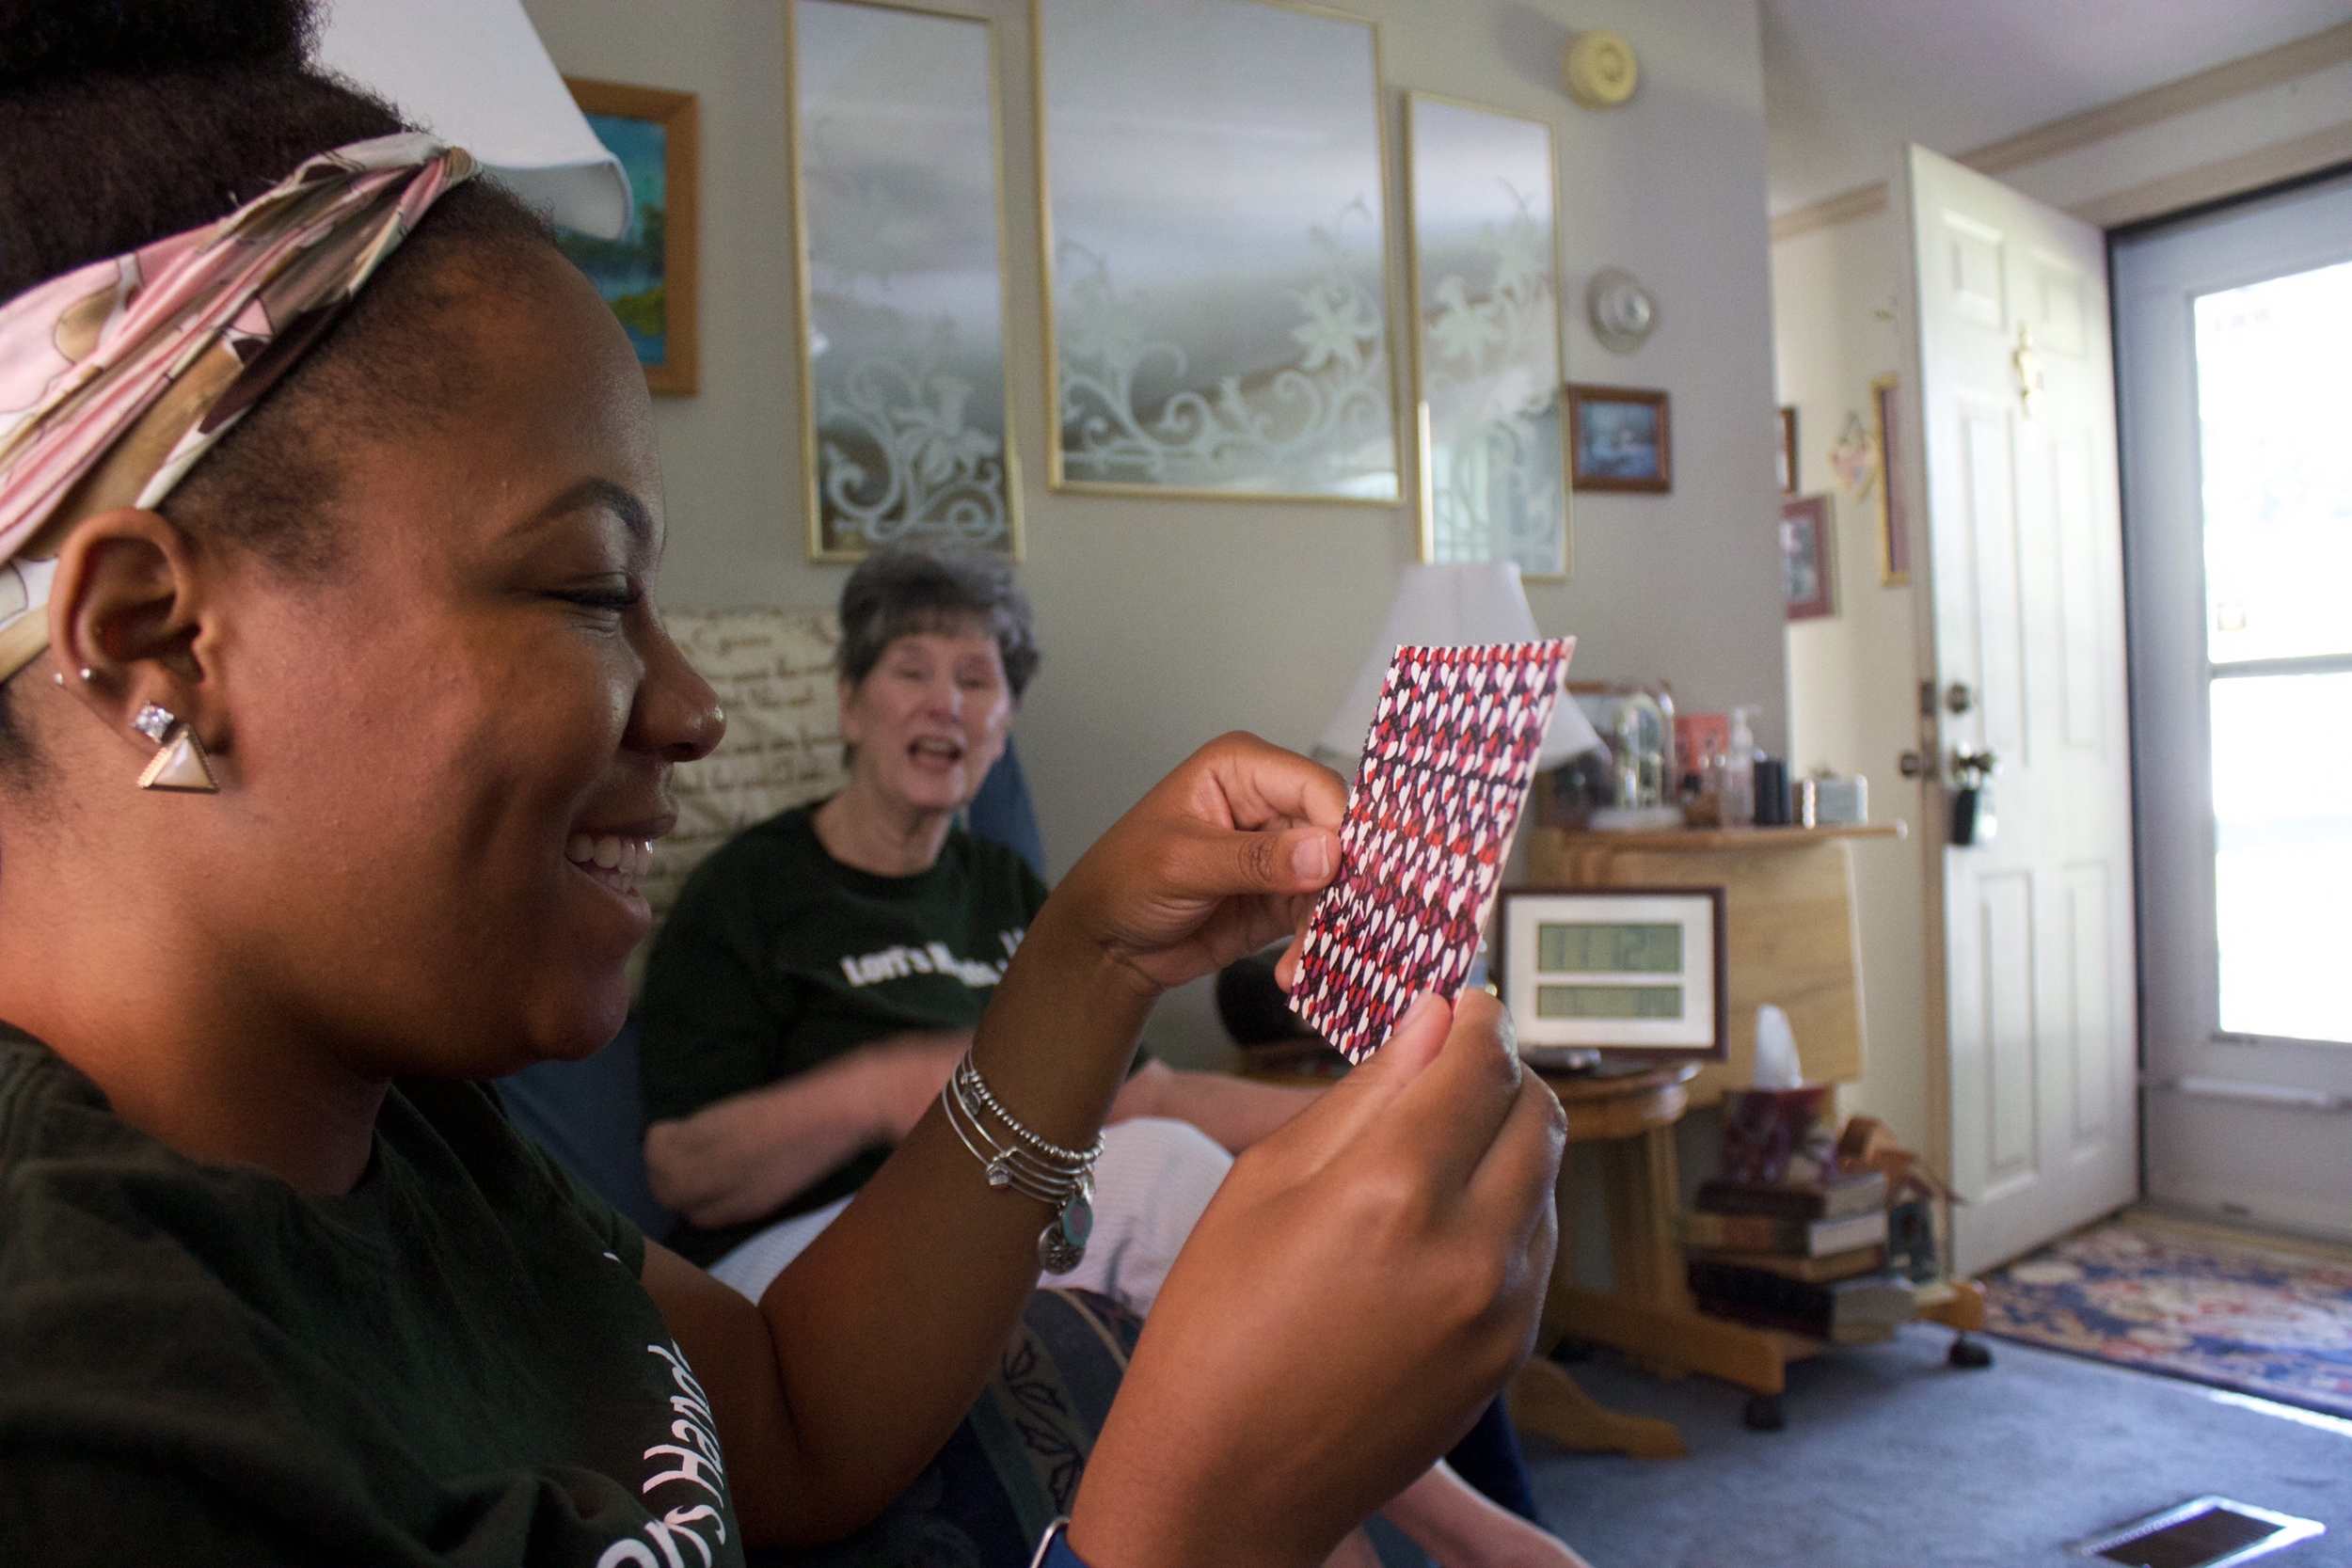 """One of Alyssa's clients has her check out a """"magic eye"""" game during a visit"""